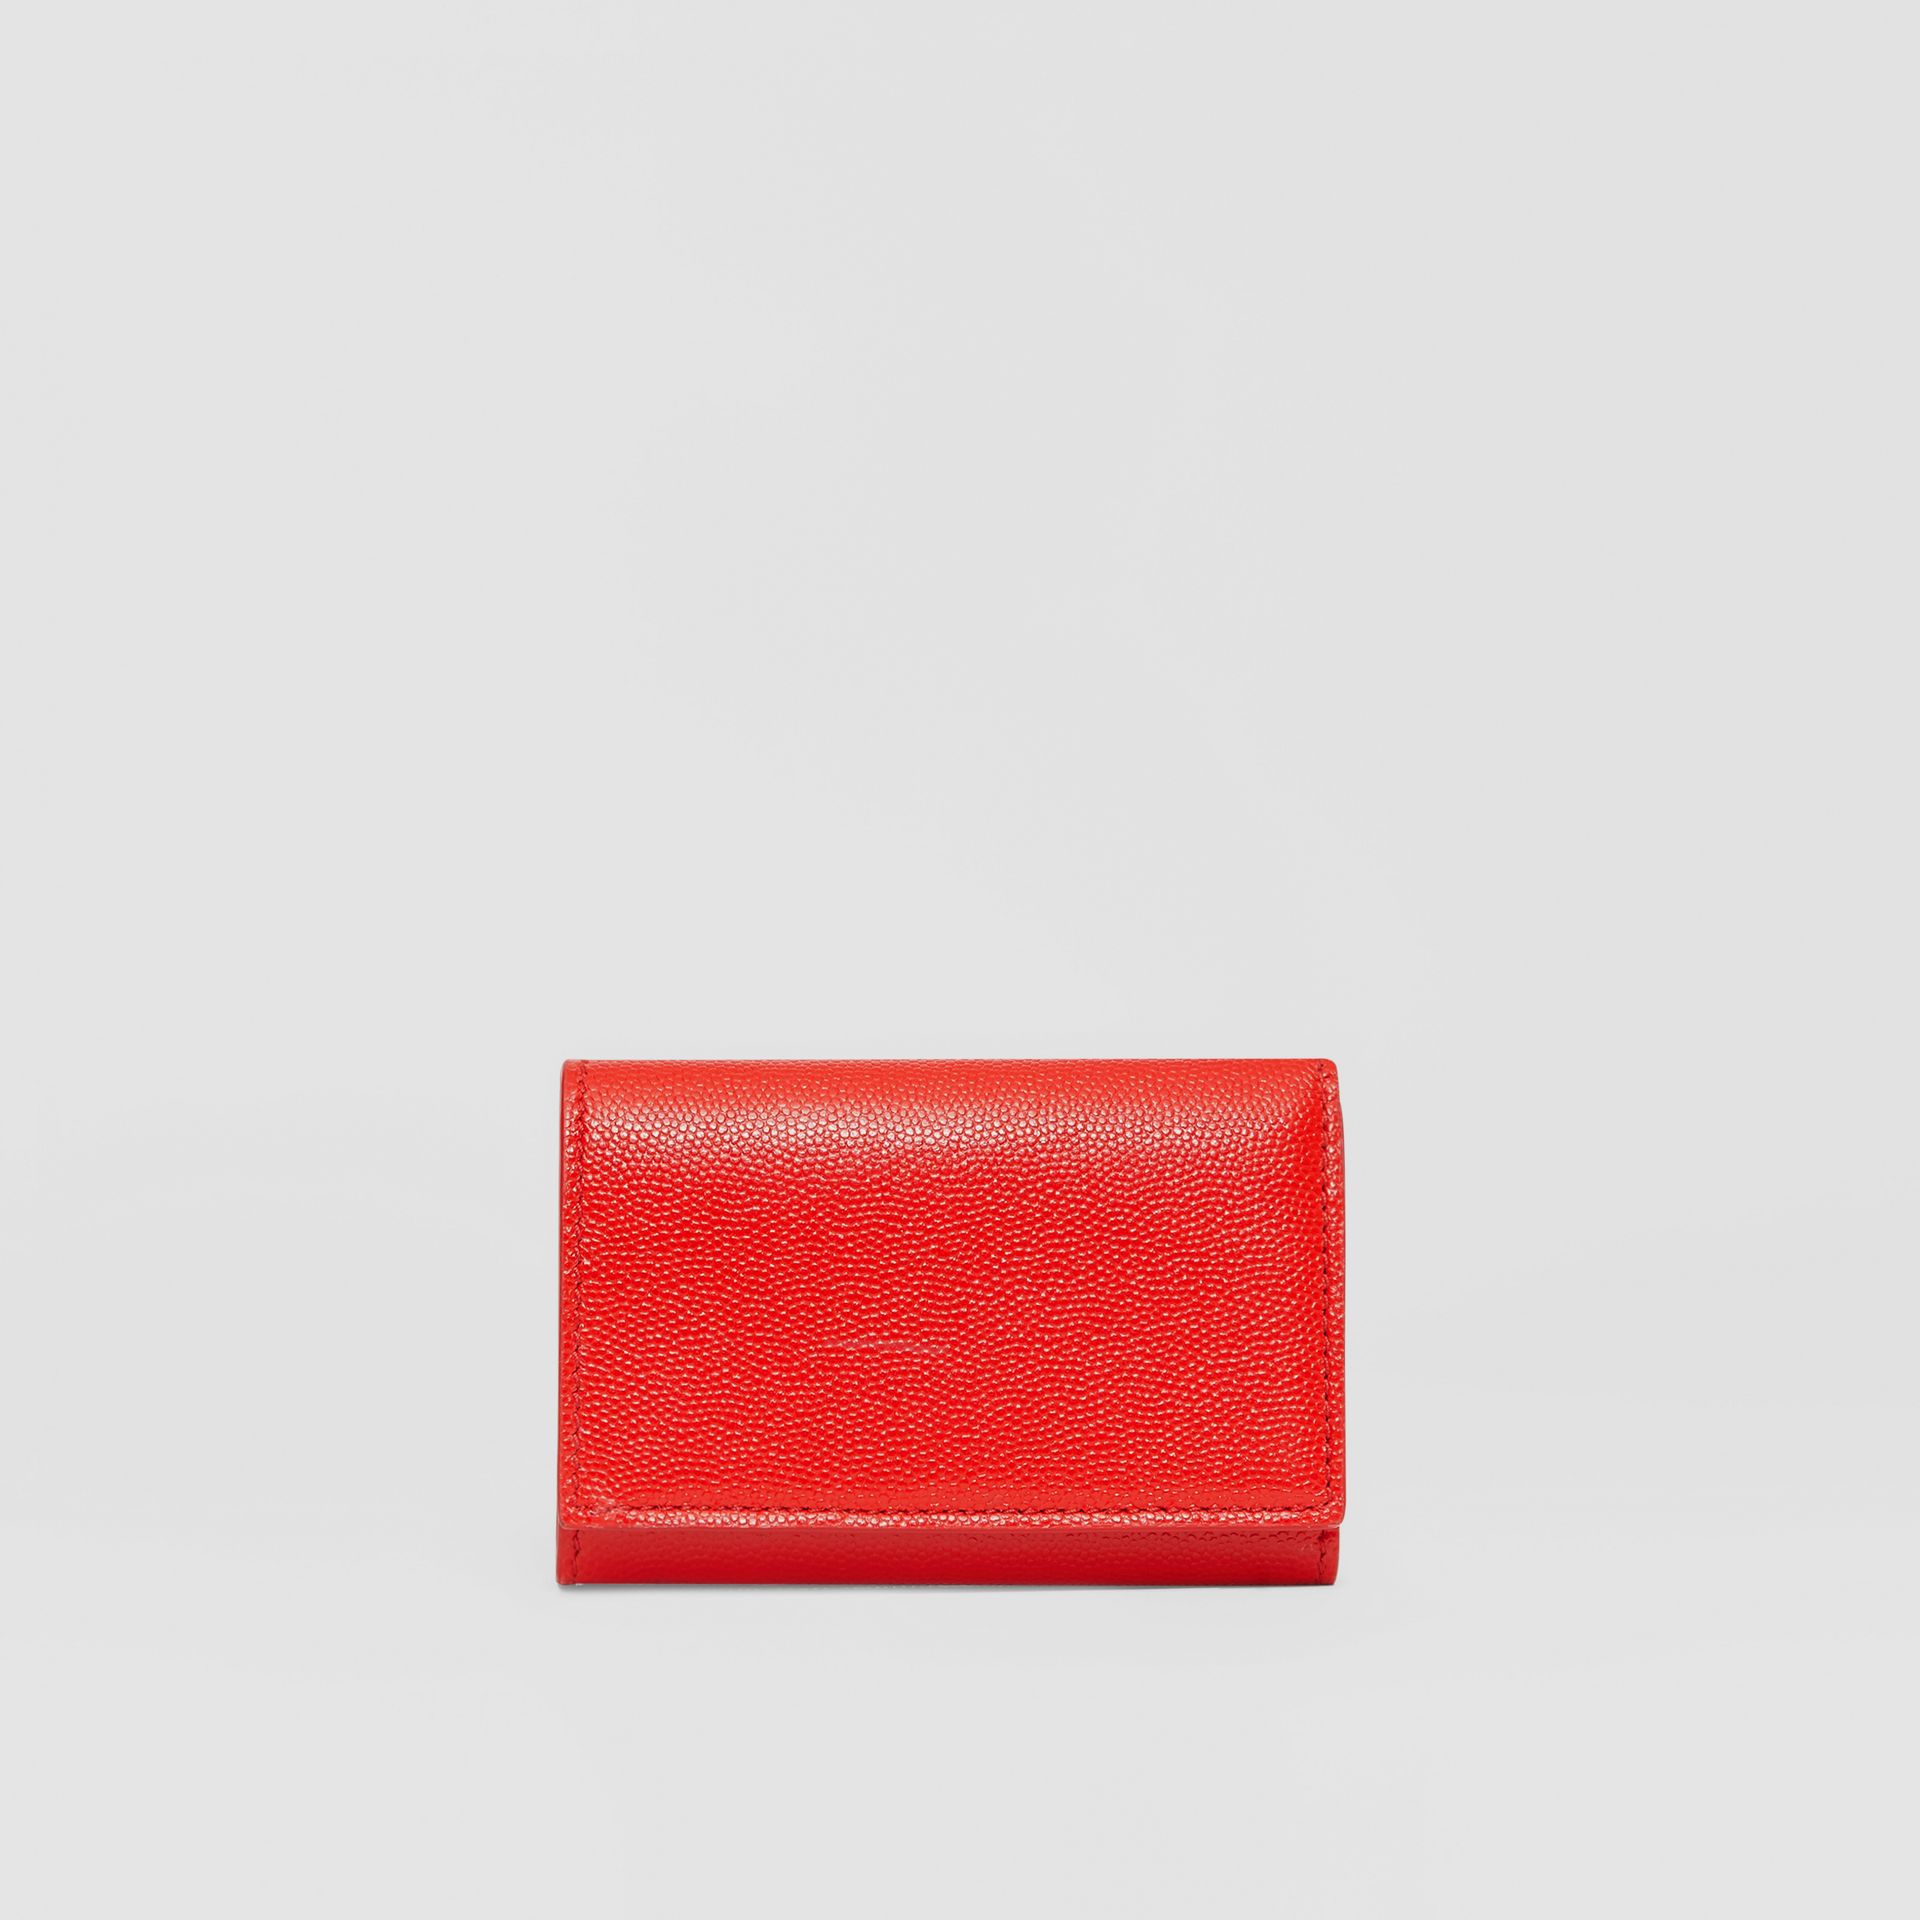 Small Grainy Leather Folding Wallet in Bright Red - Women | Burberry - gallery image 4